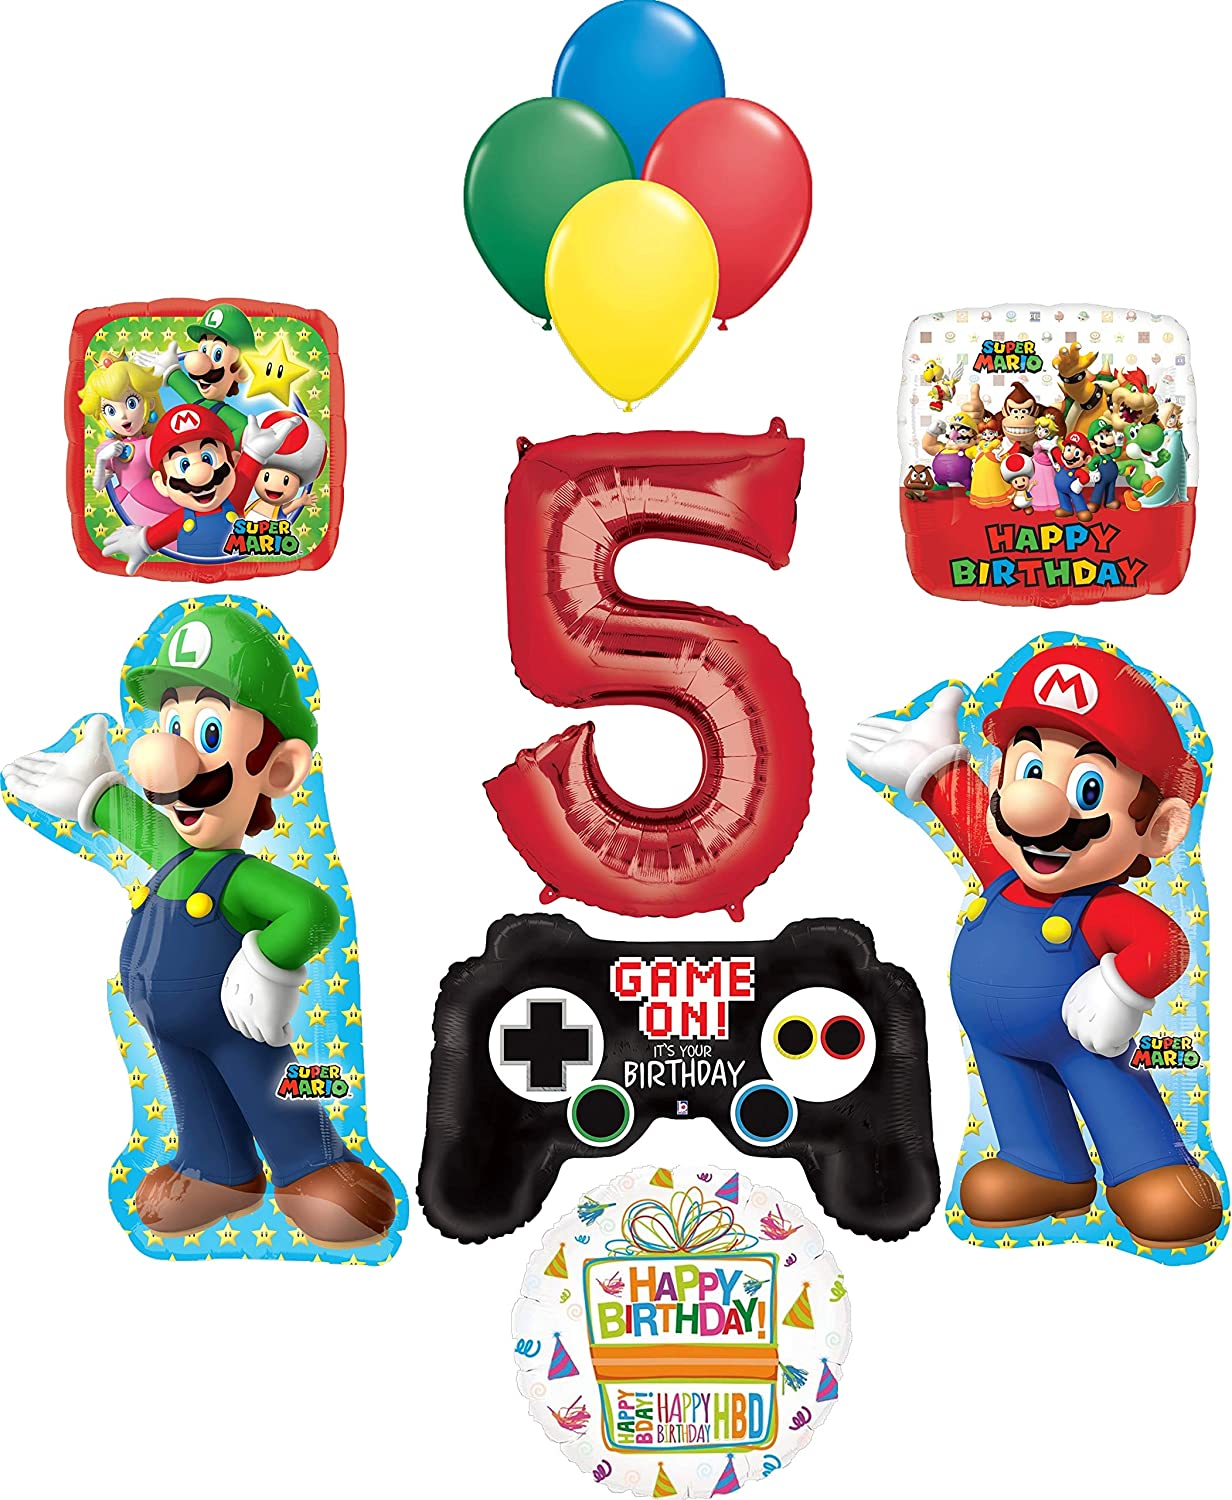 SUPER MARIO AGE 5 TODAY 5TH BIRTHDAY CARD NEW GIFT